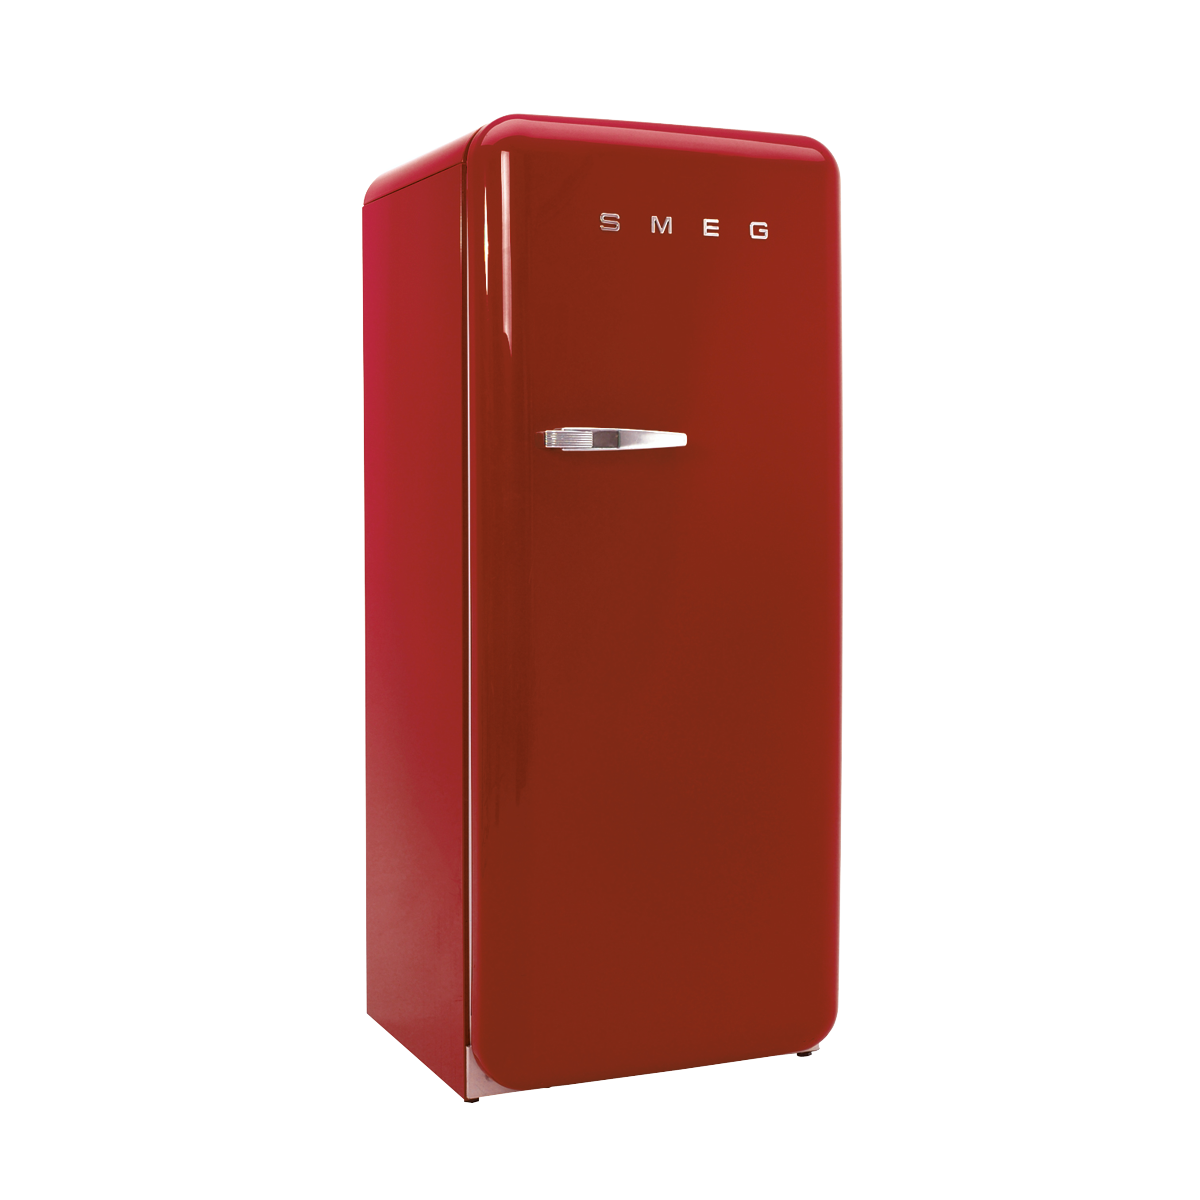 frigo retro smeg rouge femat pour ma f te je suis par. Black Bedroom Furniture Sets. Home Design Ideas